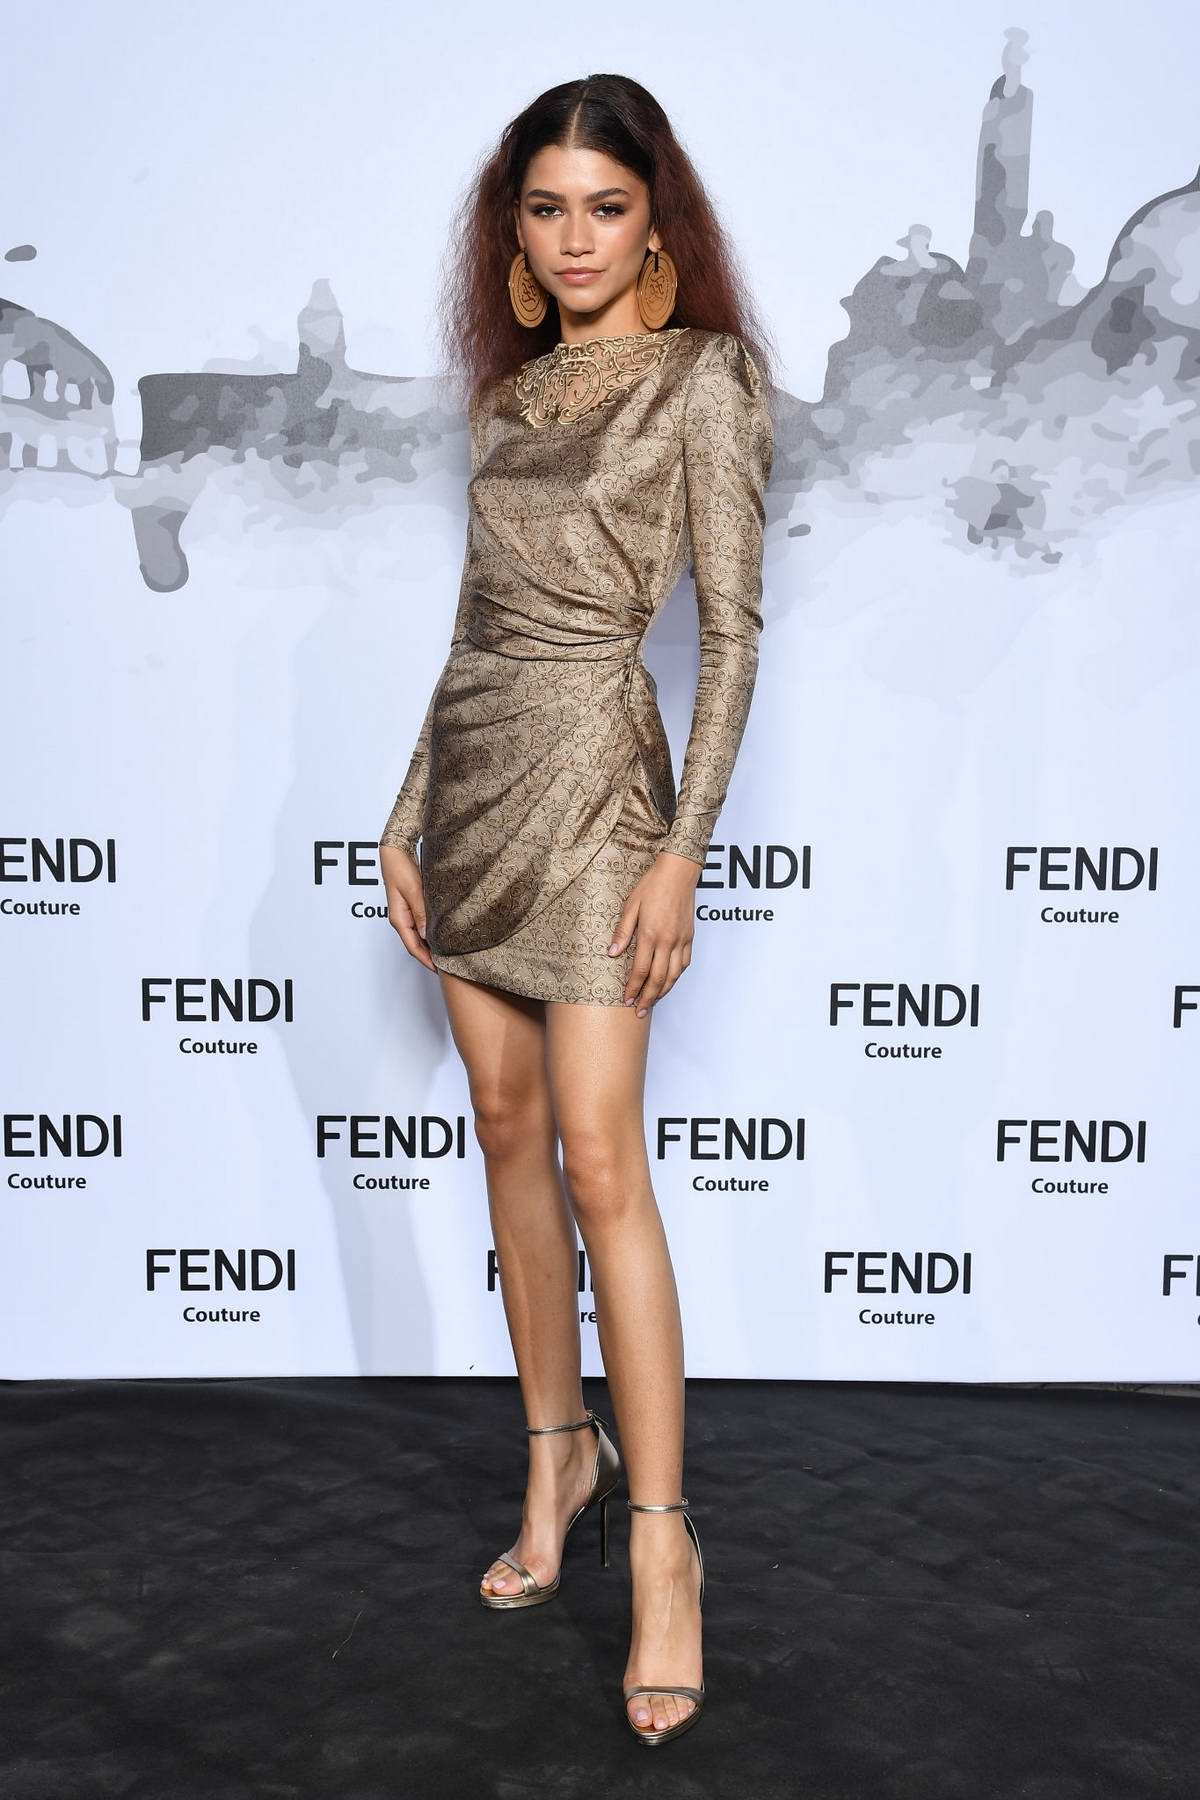 Zendaya attends the Cocktail and Fendi Couture Fall/Winter 2019/20 at Palatine Hill in Rome, Italy